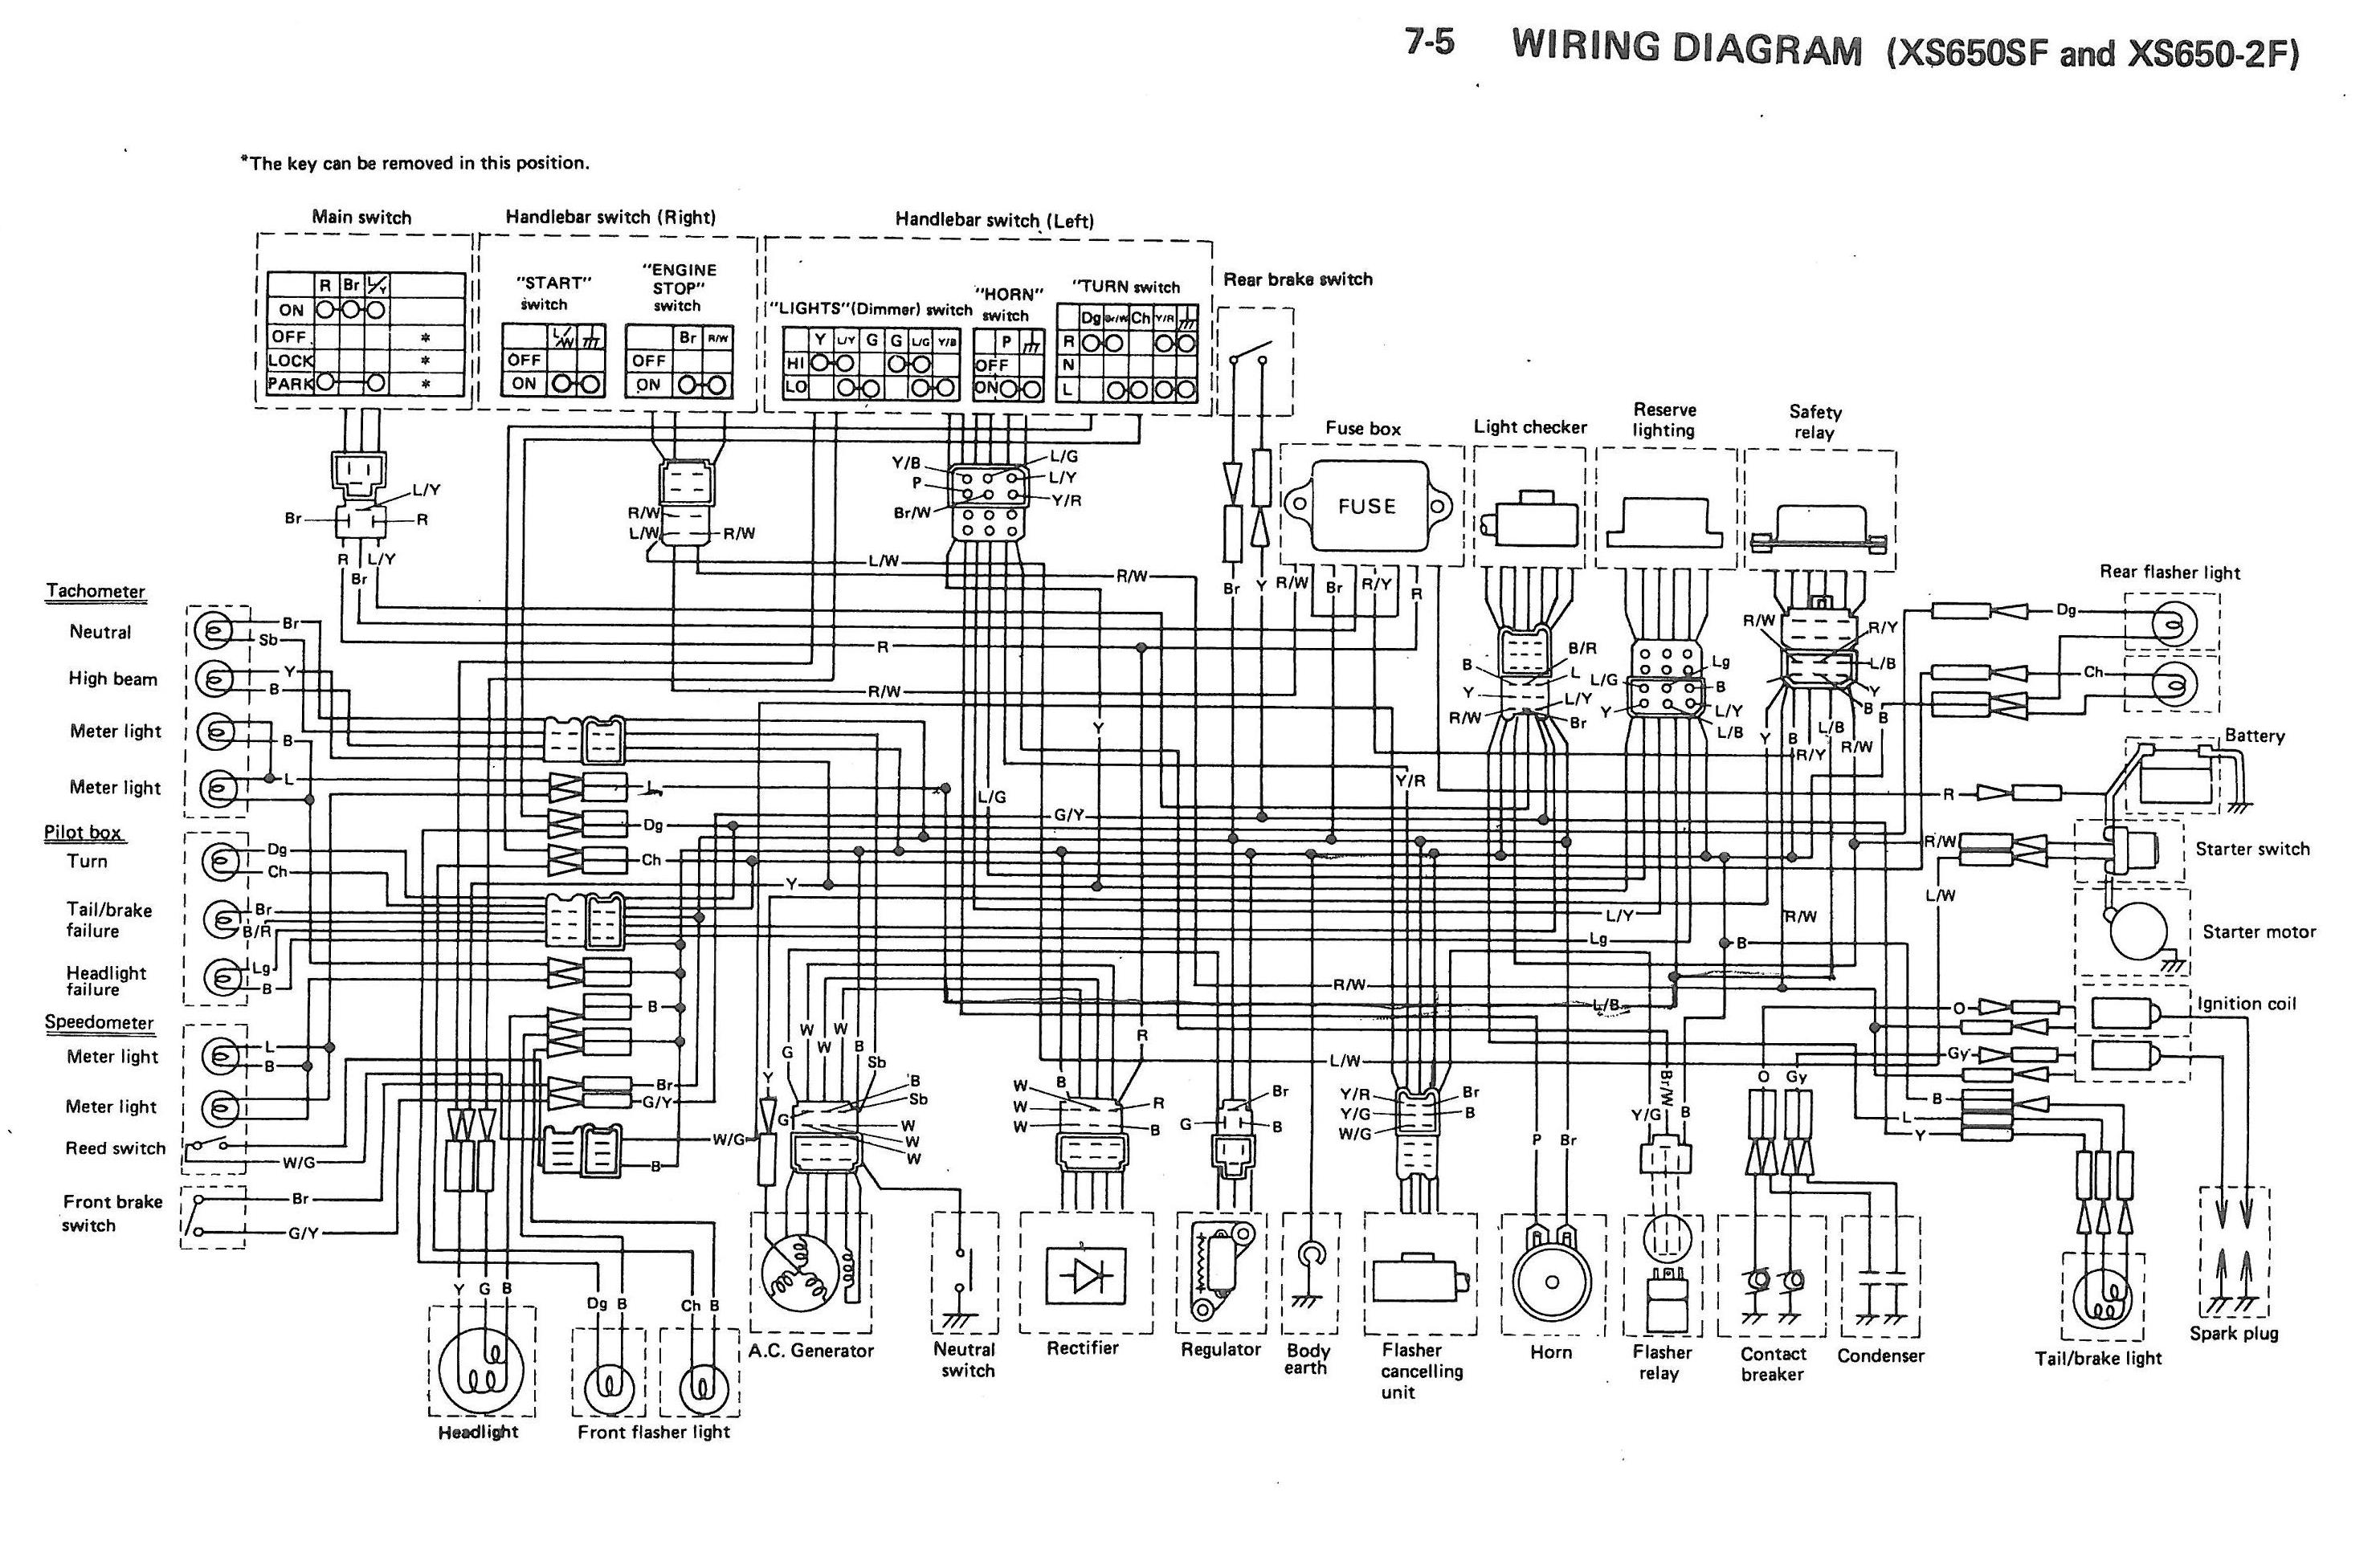 79 xs650sf 2f xs650 79 xs650sf 2f wiring diagrams thexscafe xs650 wiring diagram at honlapkeszites.co